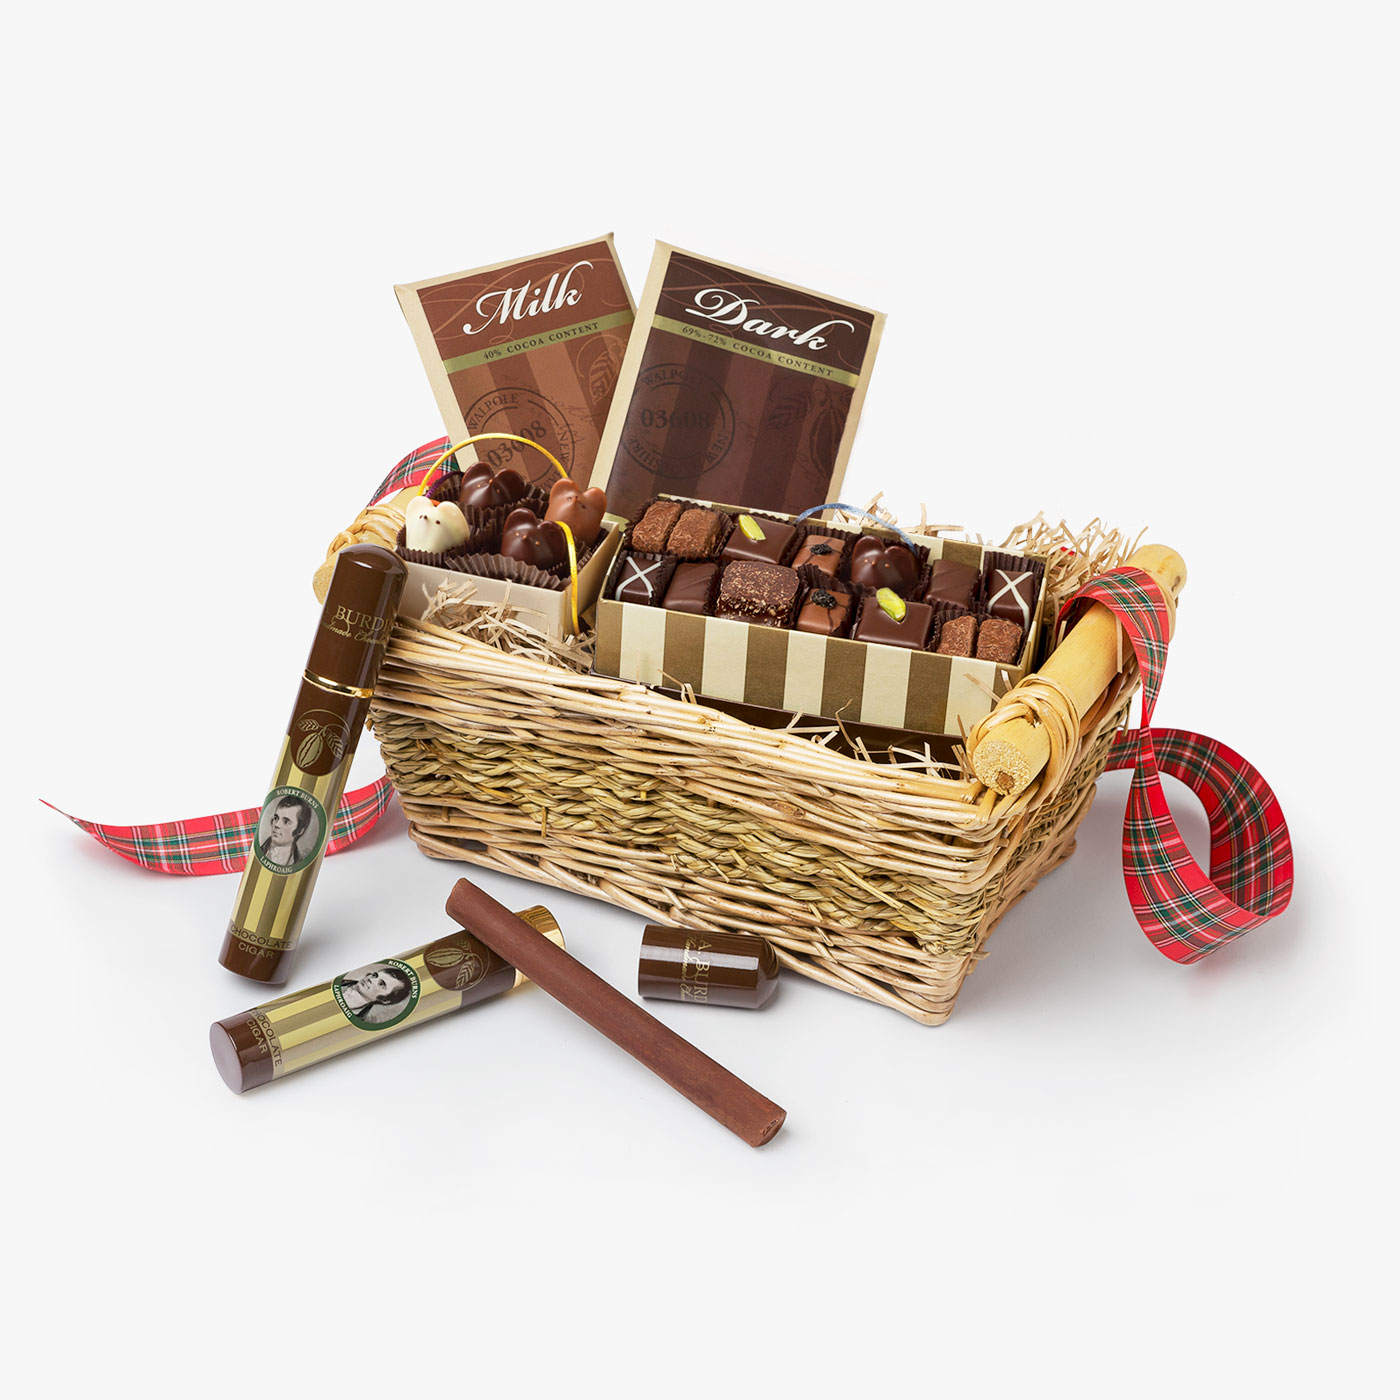 Scotch Whisky Chocolate Gift Basket